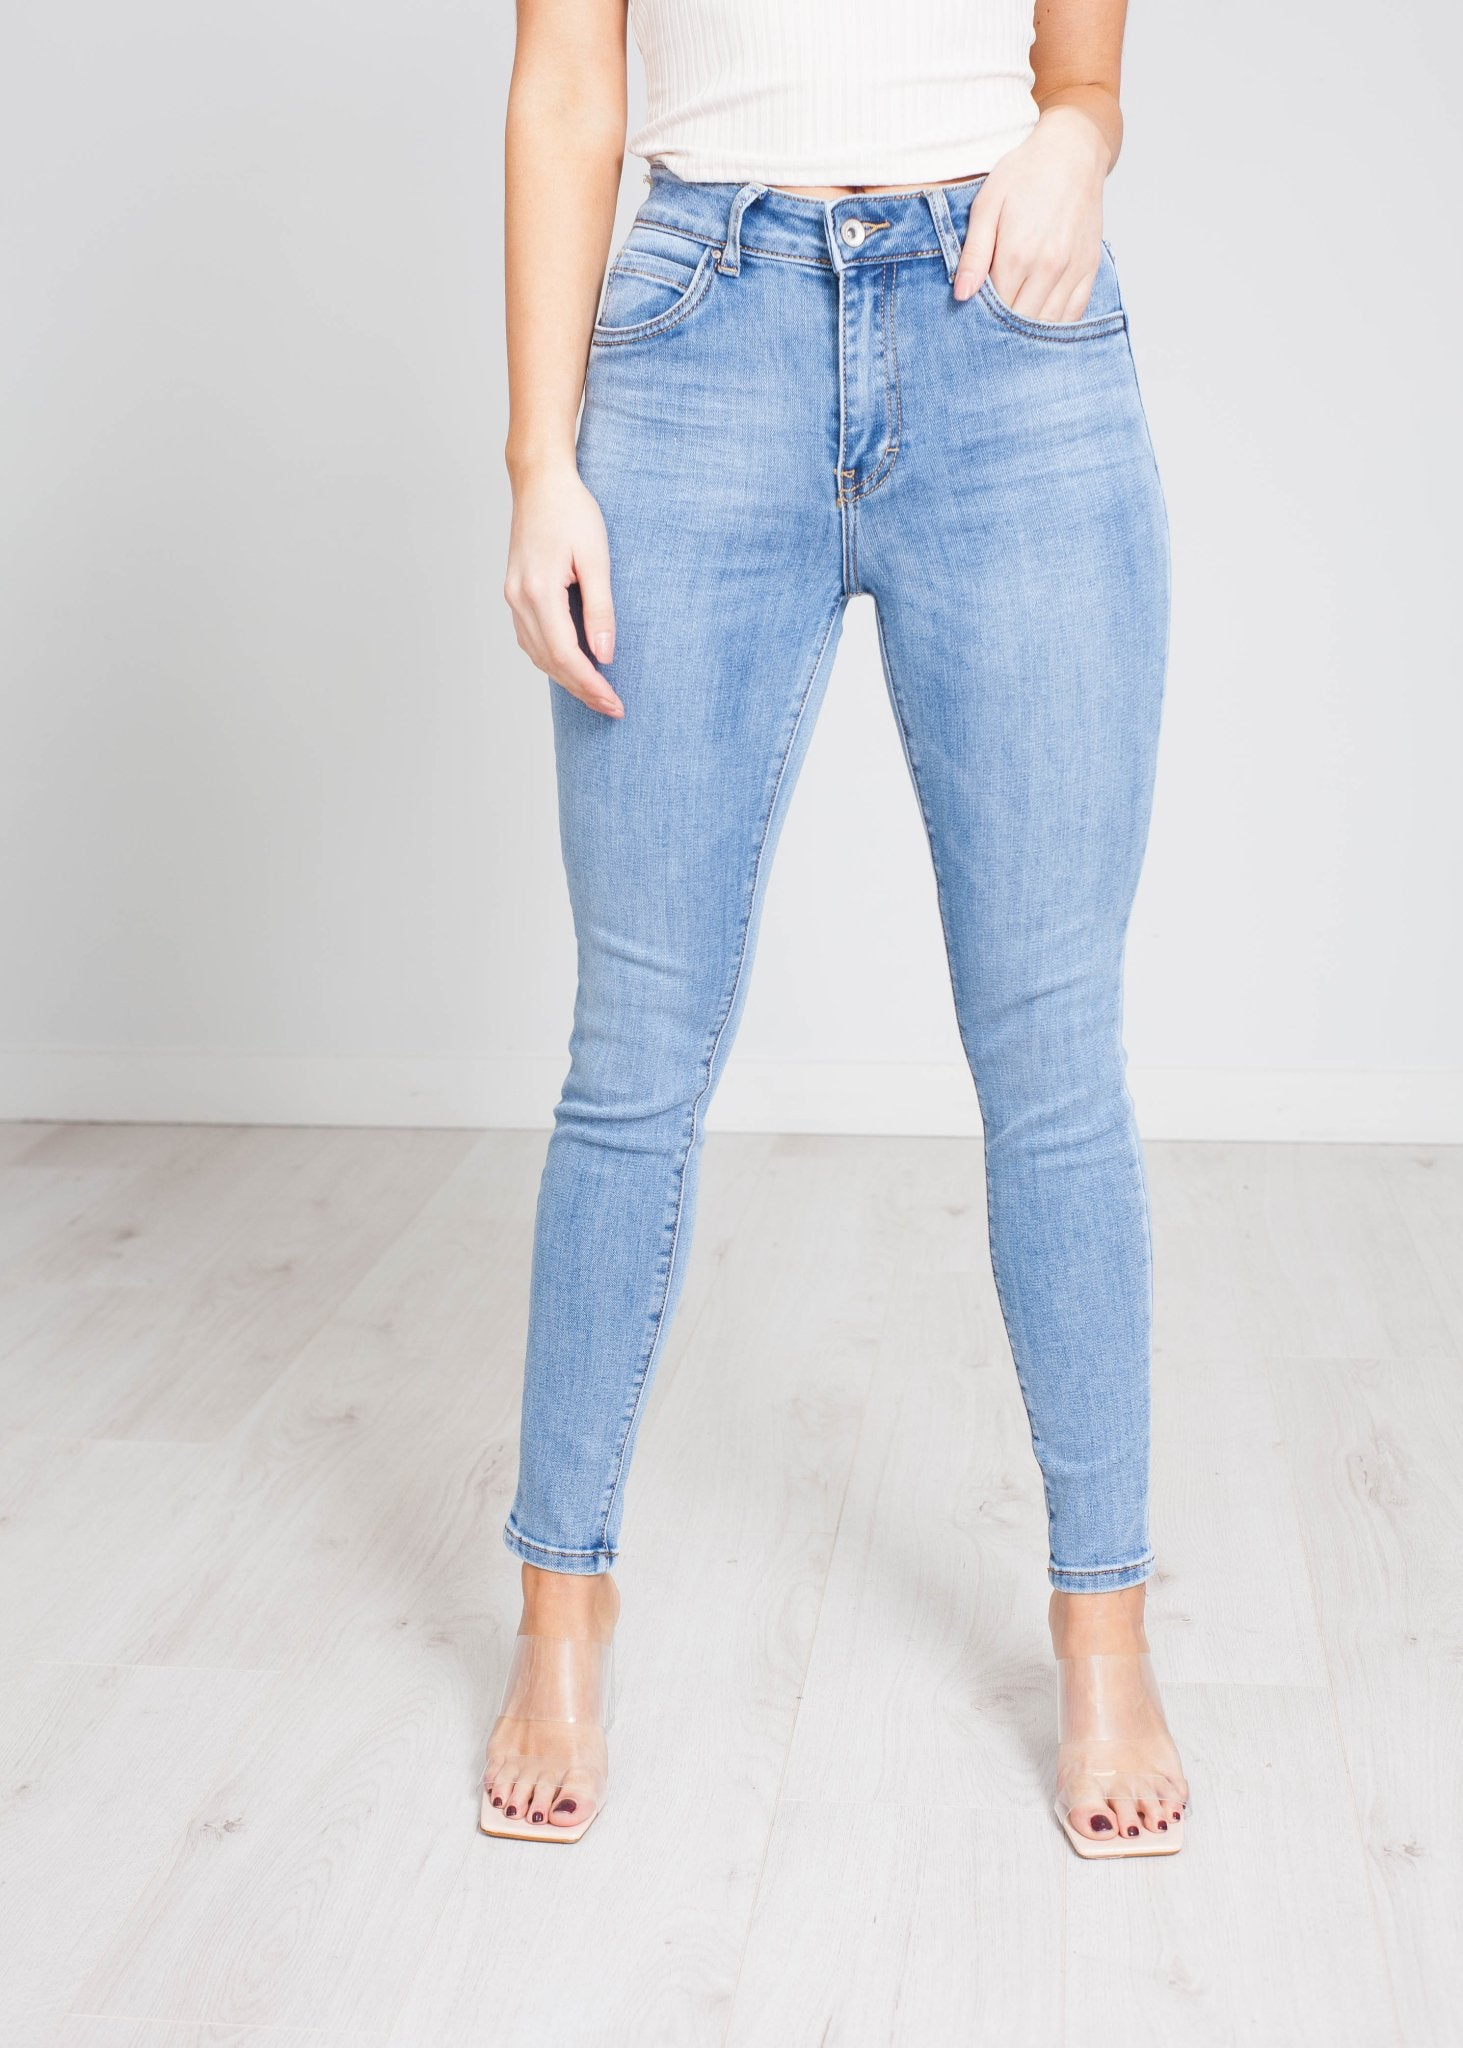 Piper High Waist Skinny Jean In Light Denim - The Walk in Wardrobe